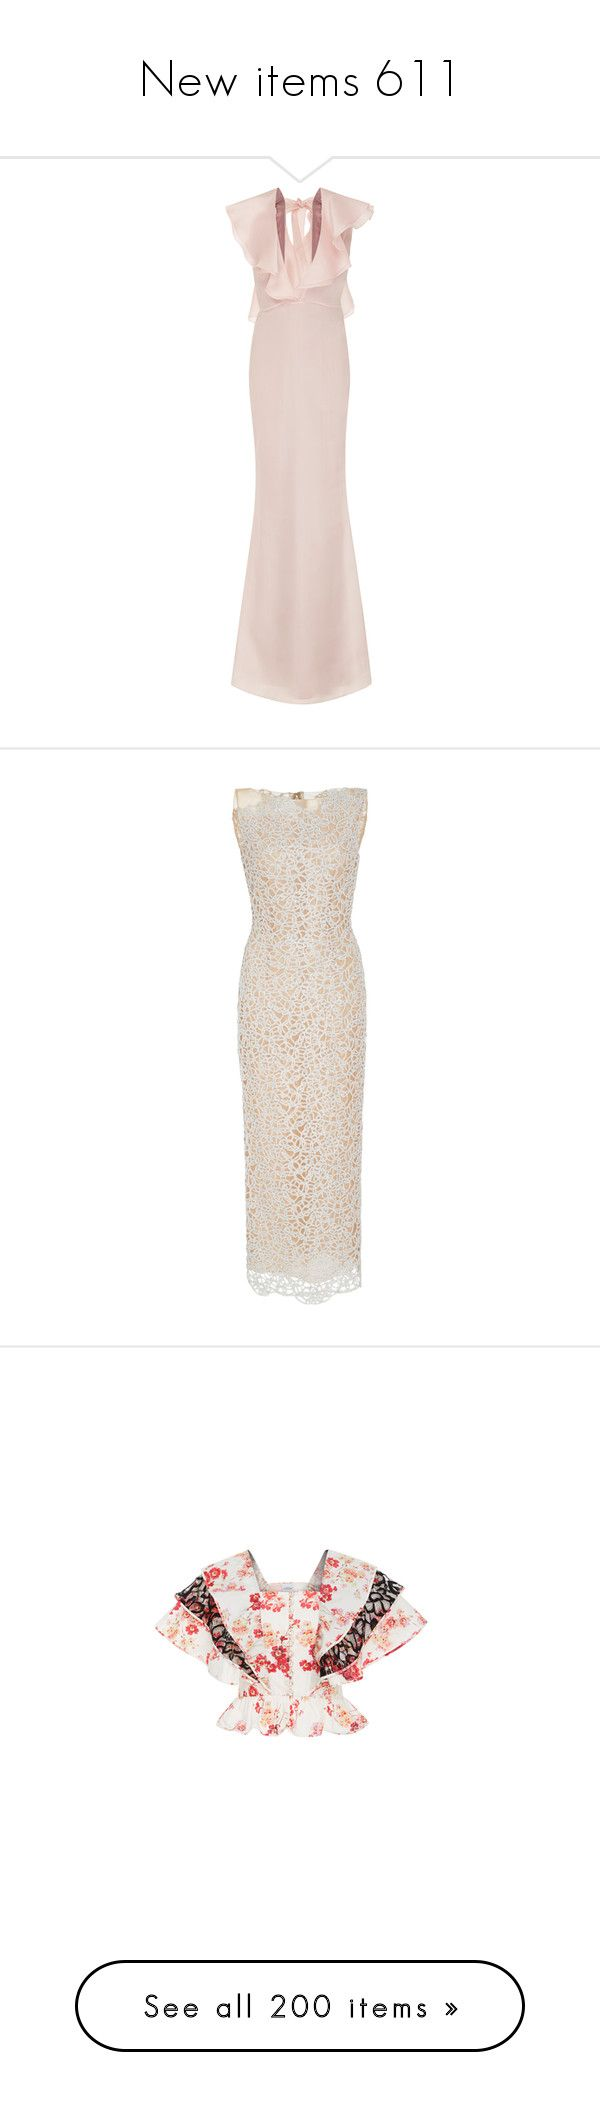 """New items 611"" by cavallaro ❤ liked on Polyvore featuring dresses, pink, plunge maxi dress, ruffle maxi dresses, pink dress, pink maxi dress, v neck dress, neutral, long evening dresses and asymmetrical dress"